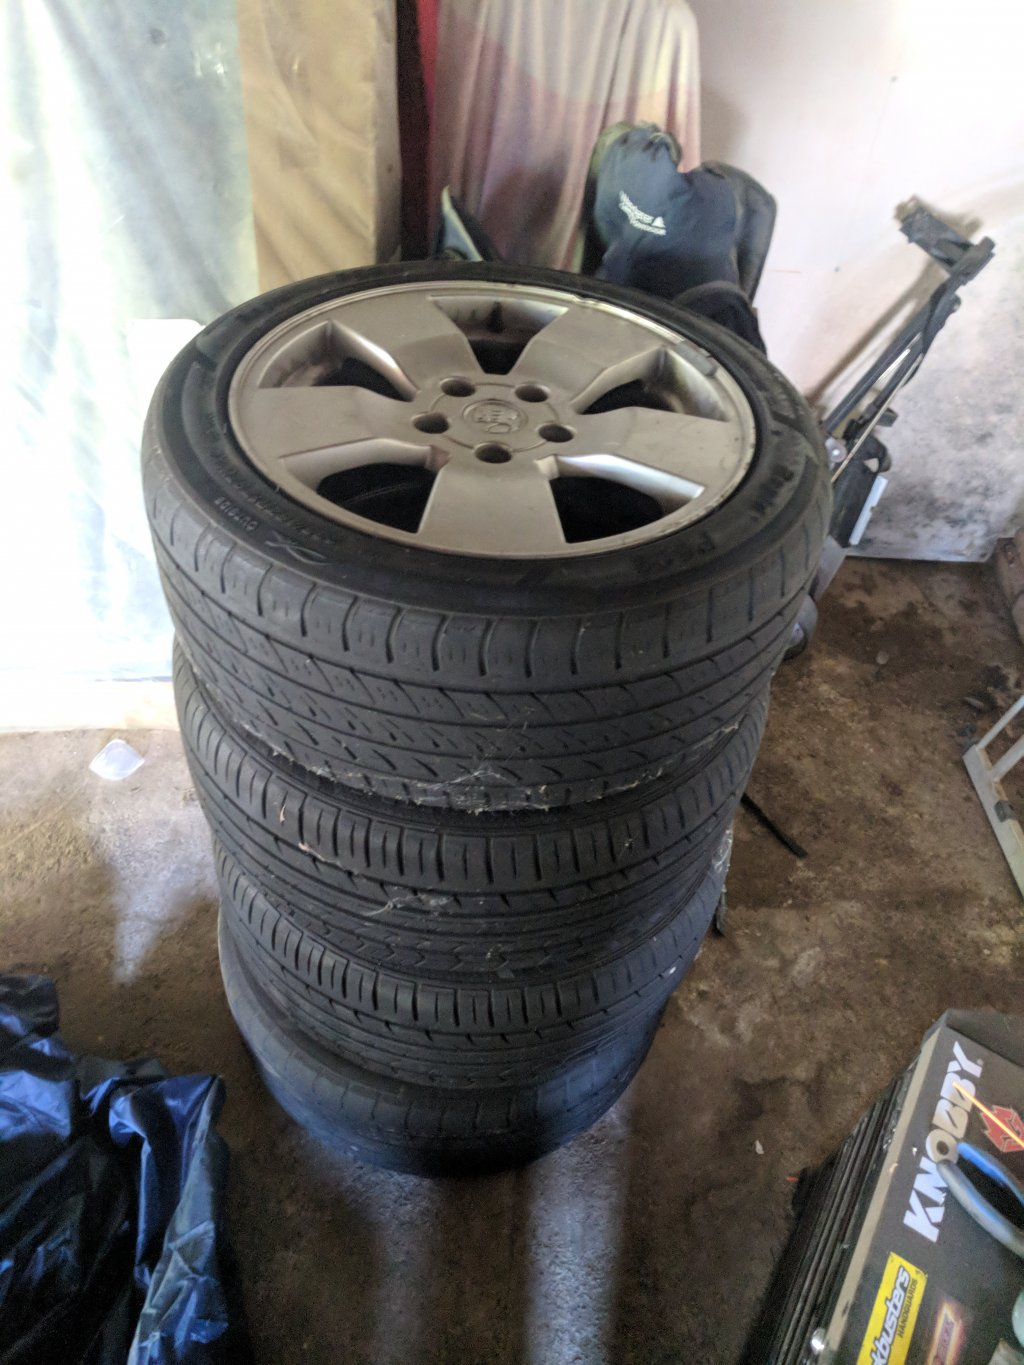 VY SV8 Rims and Tyres